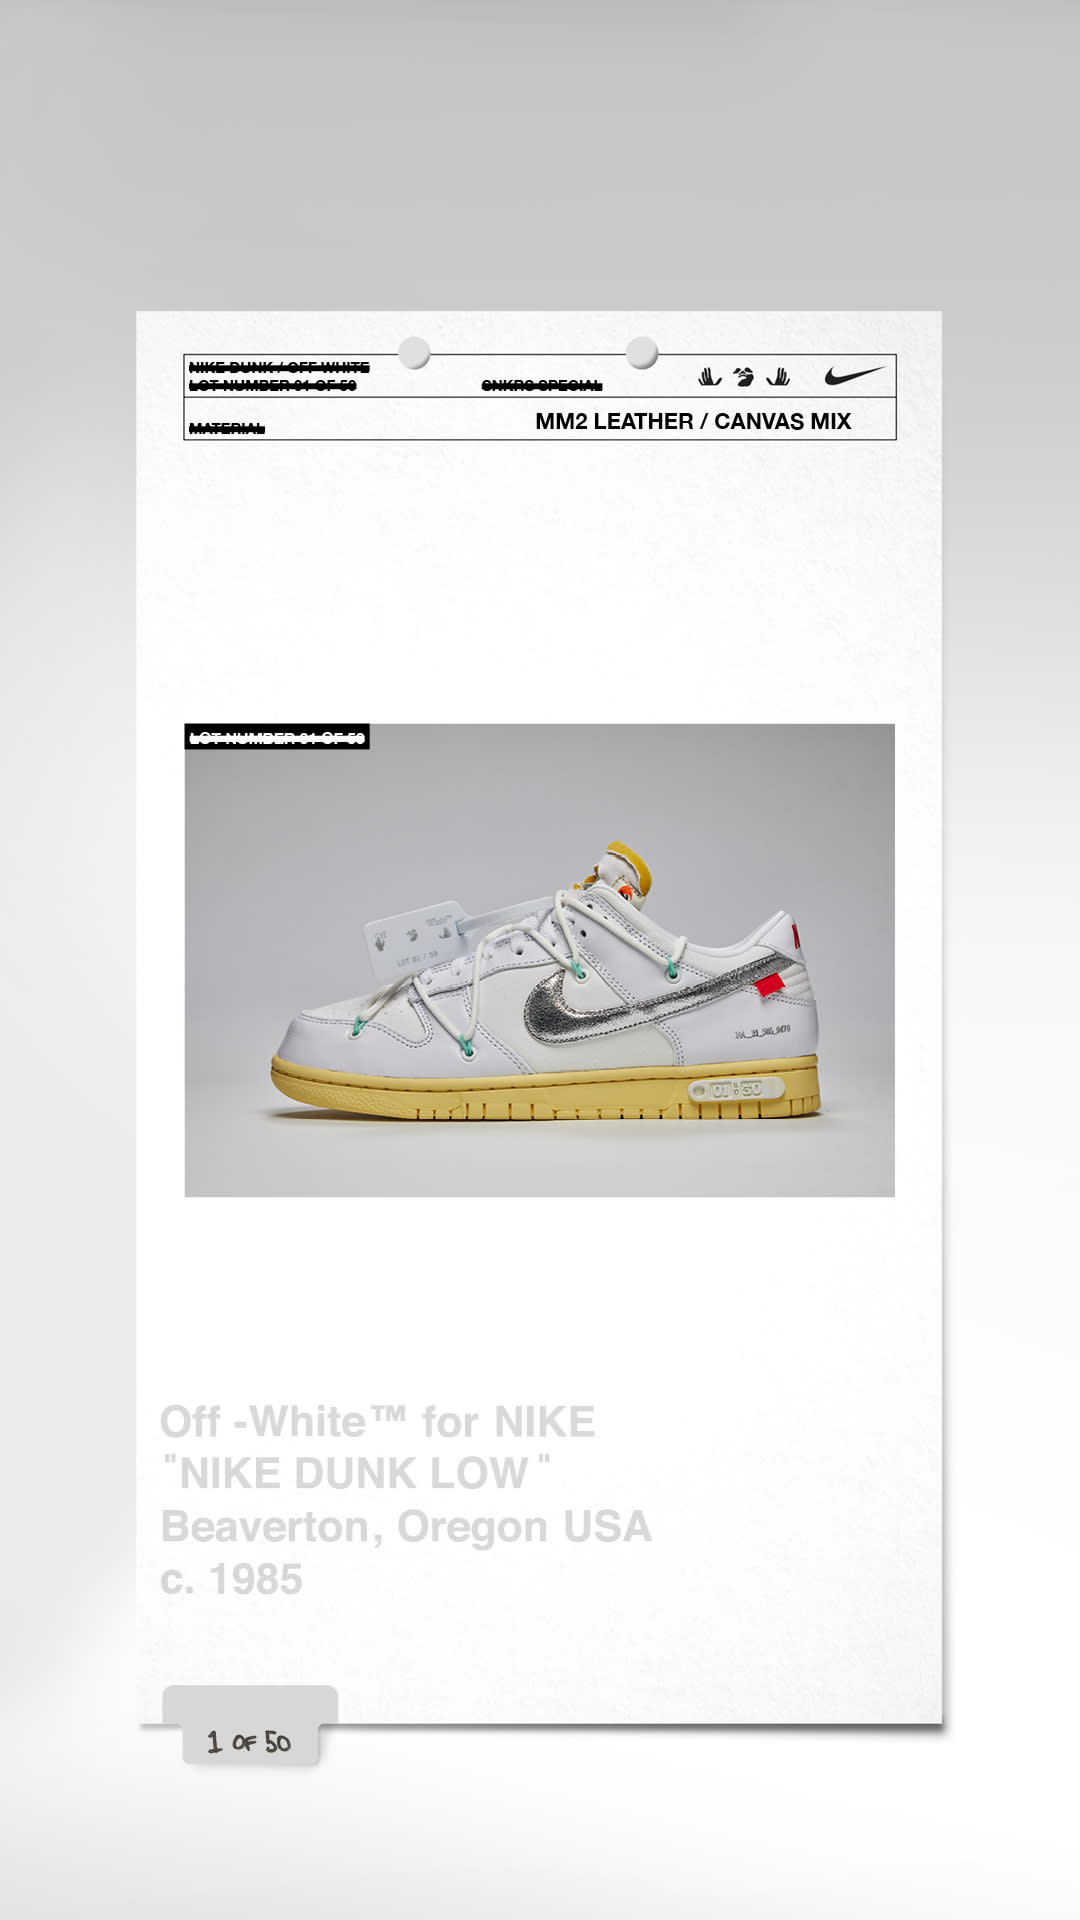 SNKRS Special: Off White Dunk